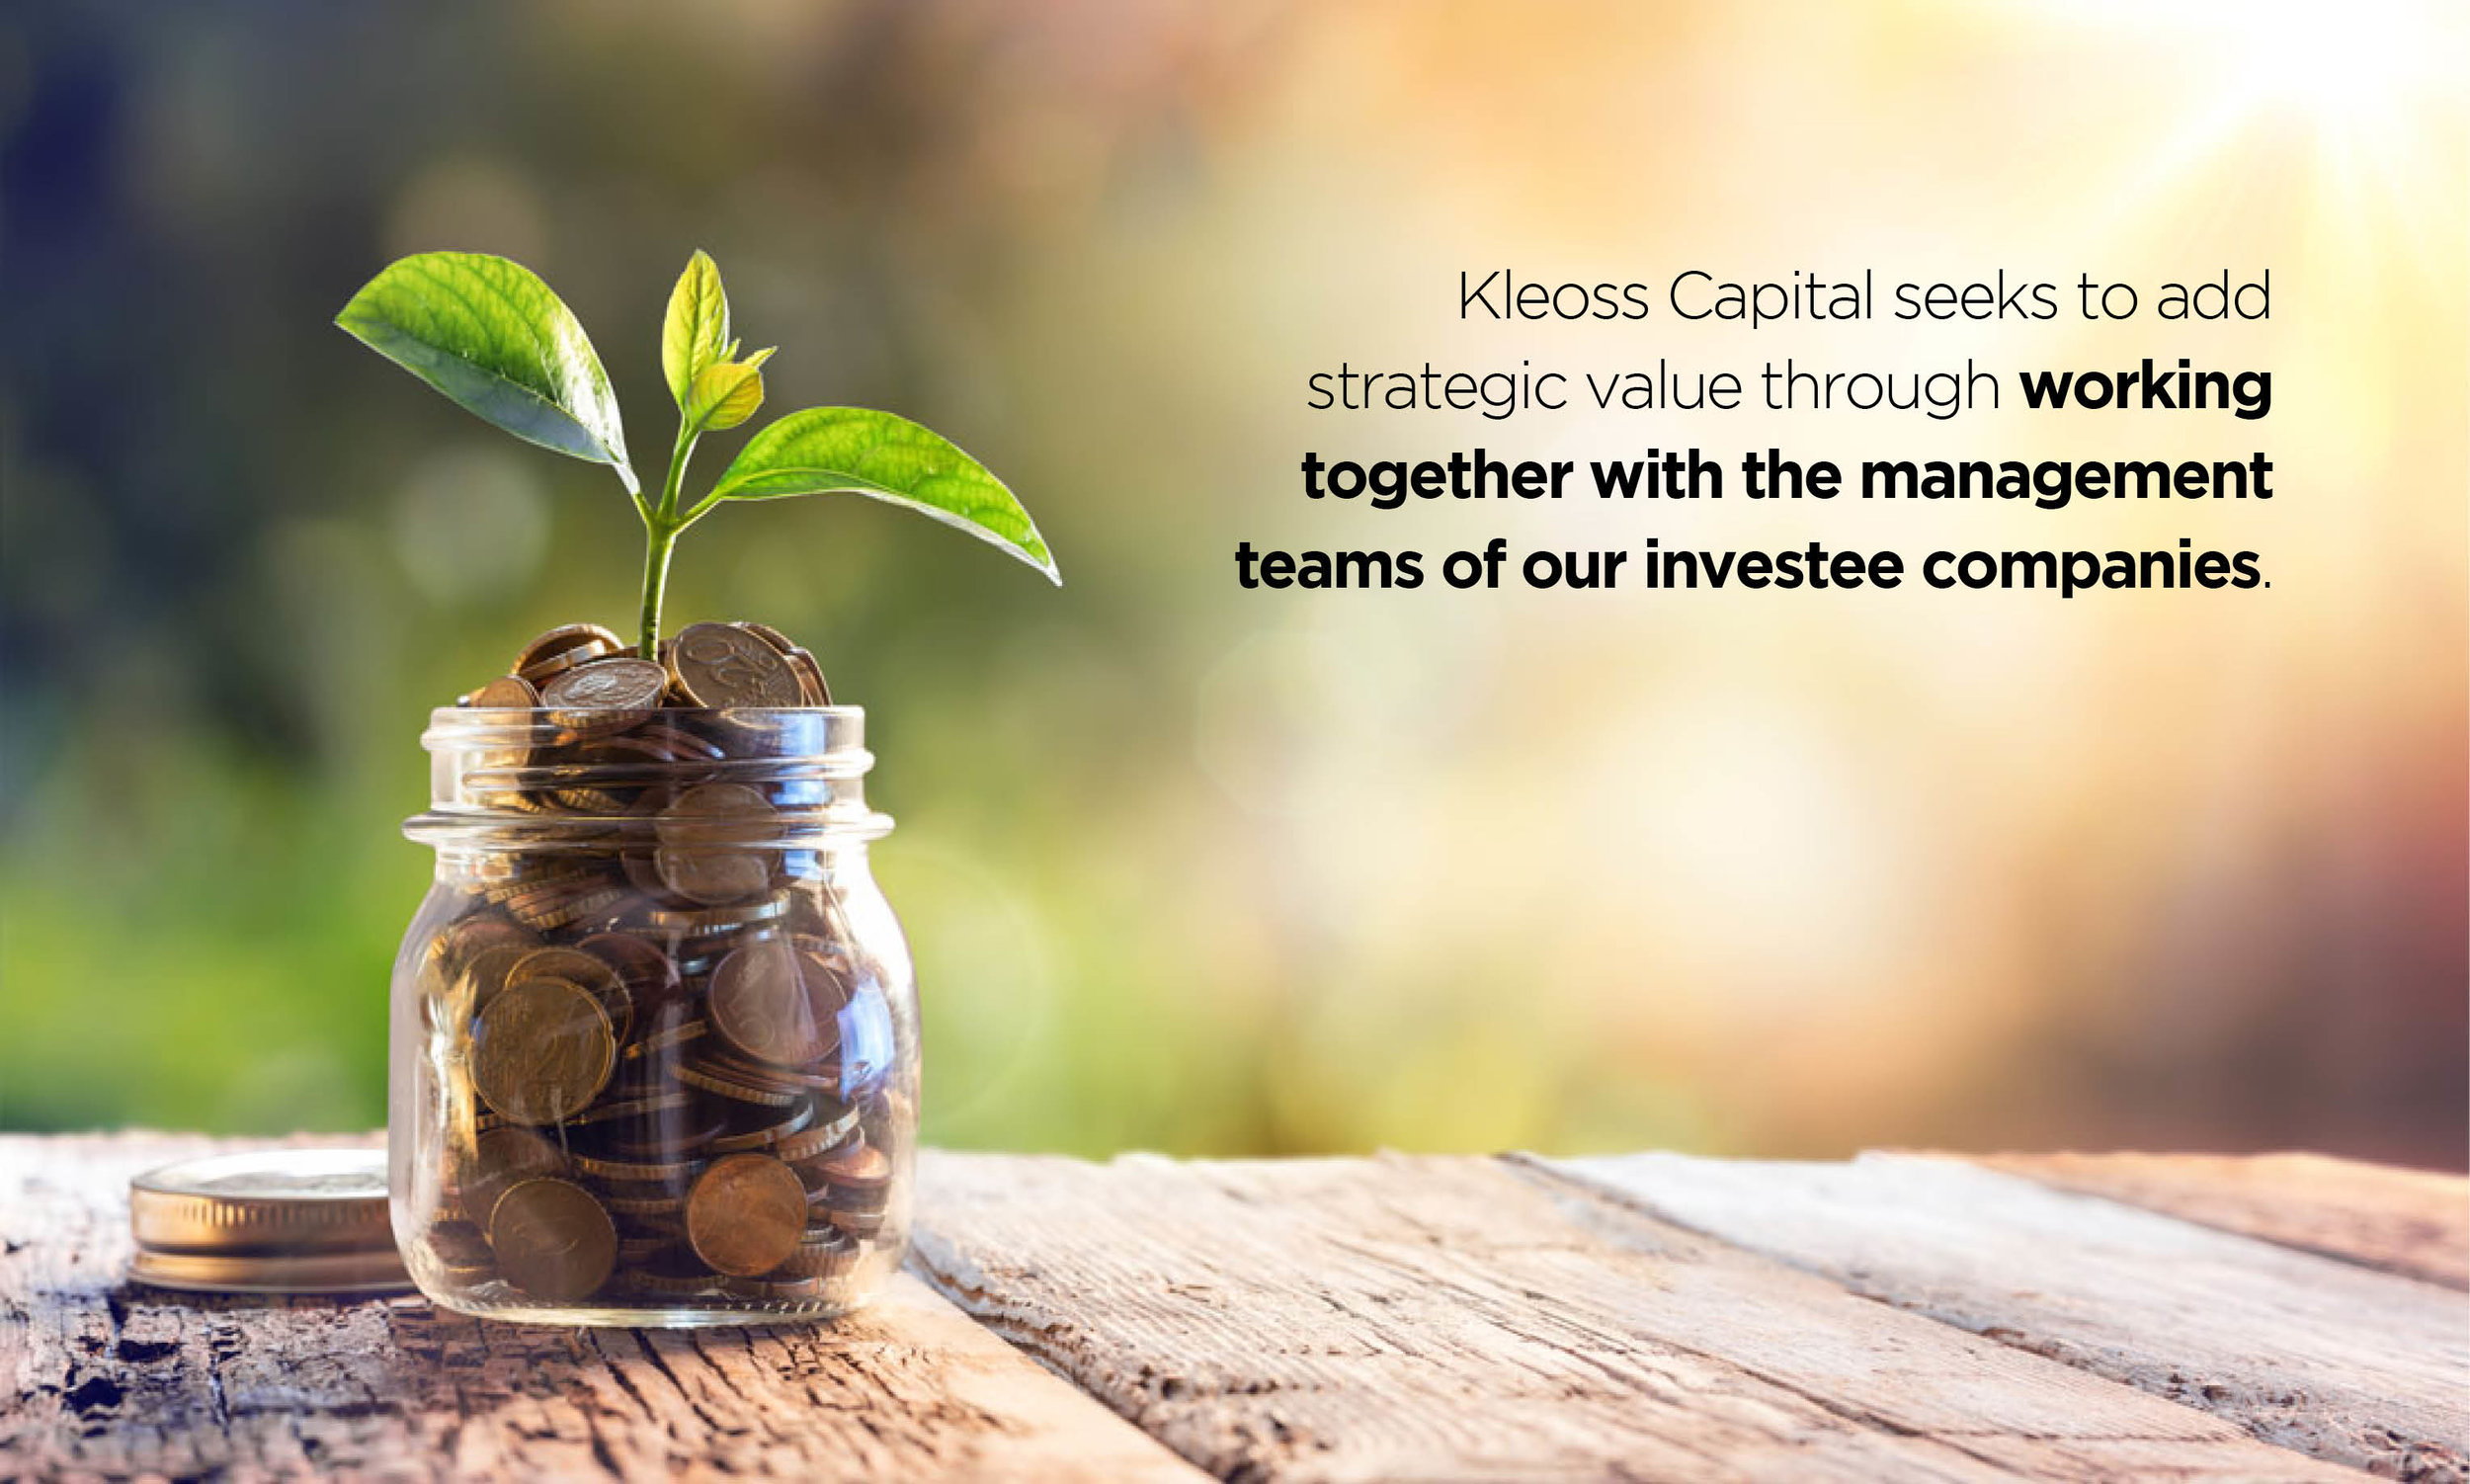 Kleoss Capital seeks to add value through working together with the management teams of our investee companies.